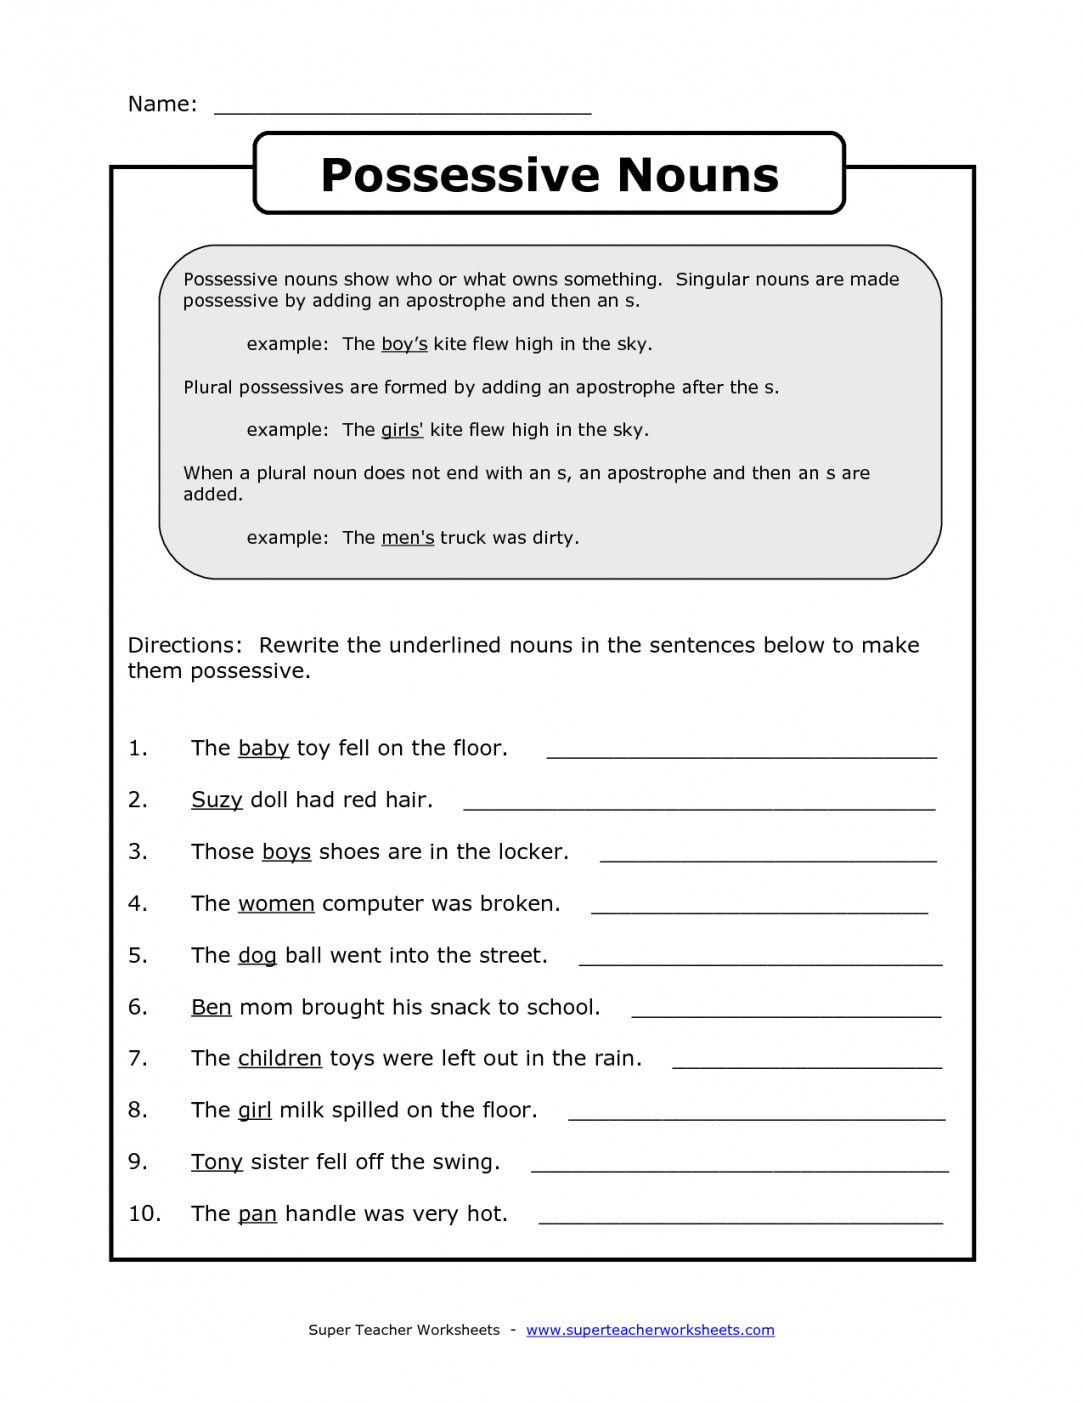 Free Printable Possessive Nouns Worksheets | Lostranquillos - Free Printable Possessive Nouns Worksheets